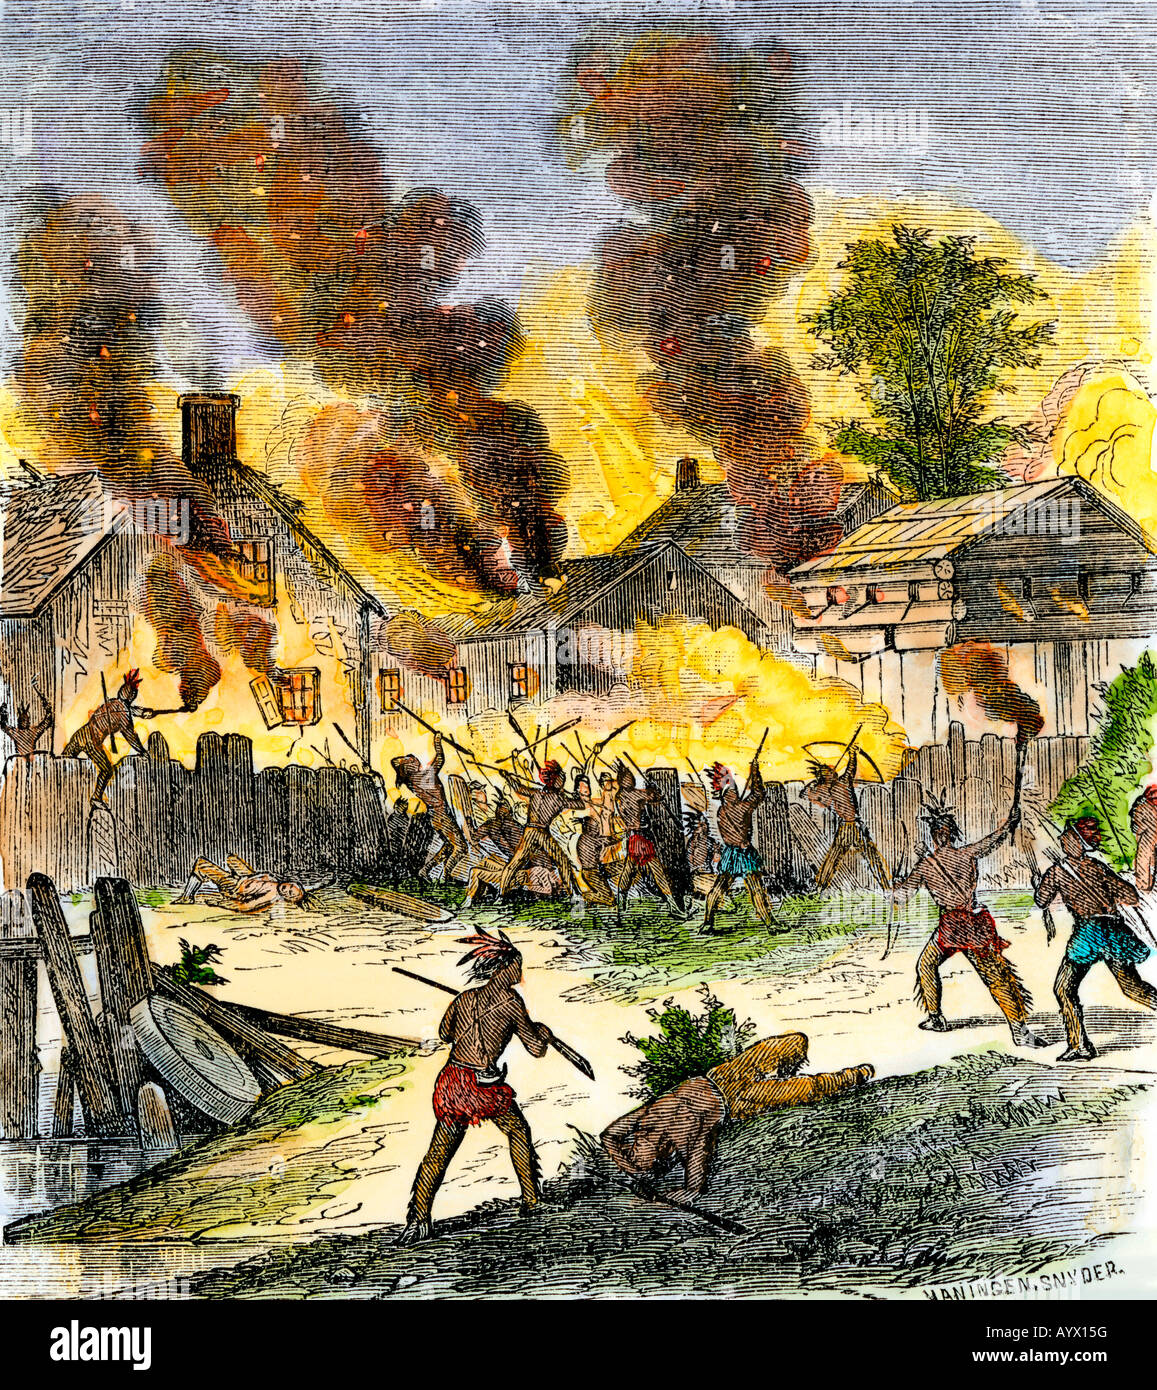 Burning of Deerfield Massachusetts during an attack by Native Americans 1704. Hand-colored woodcut - Stock Image